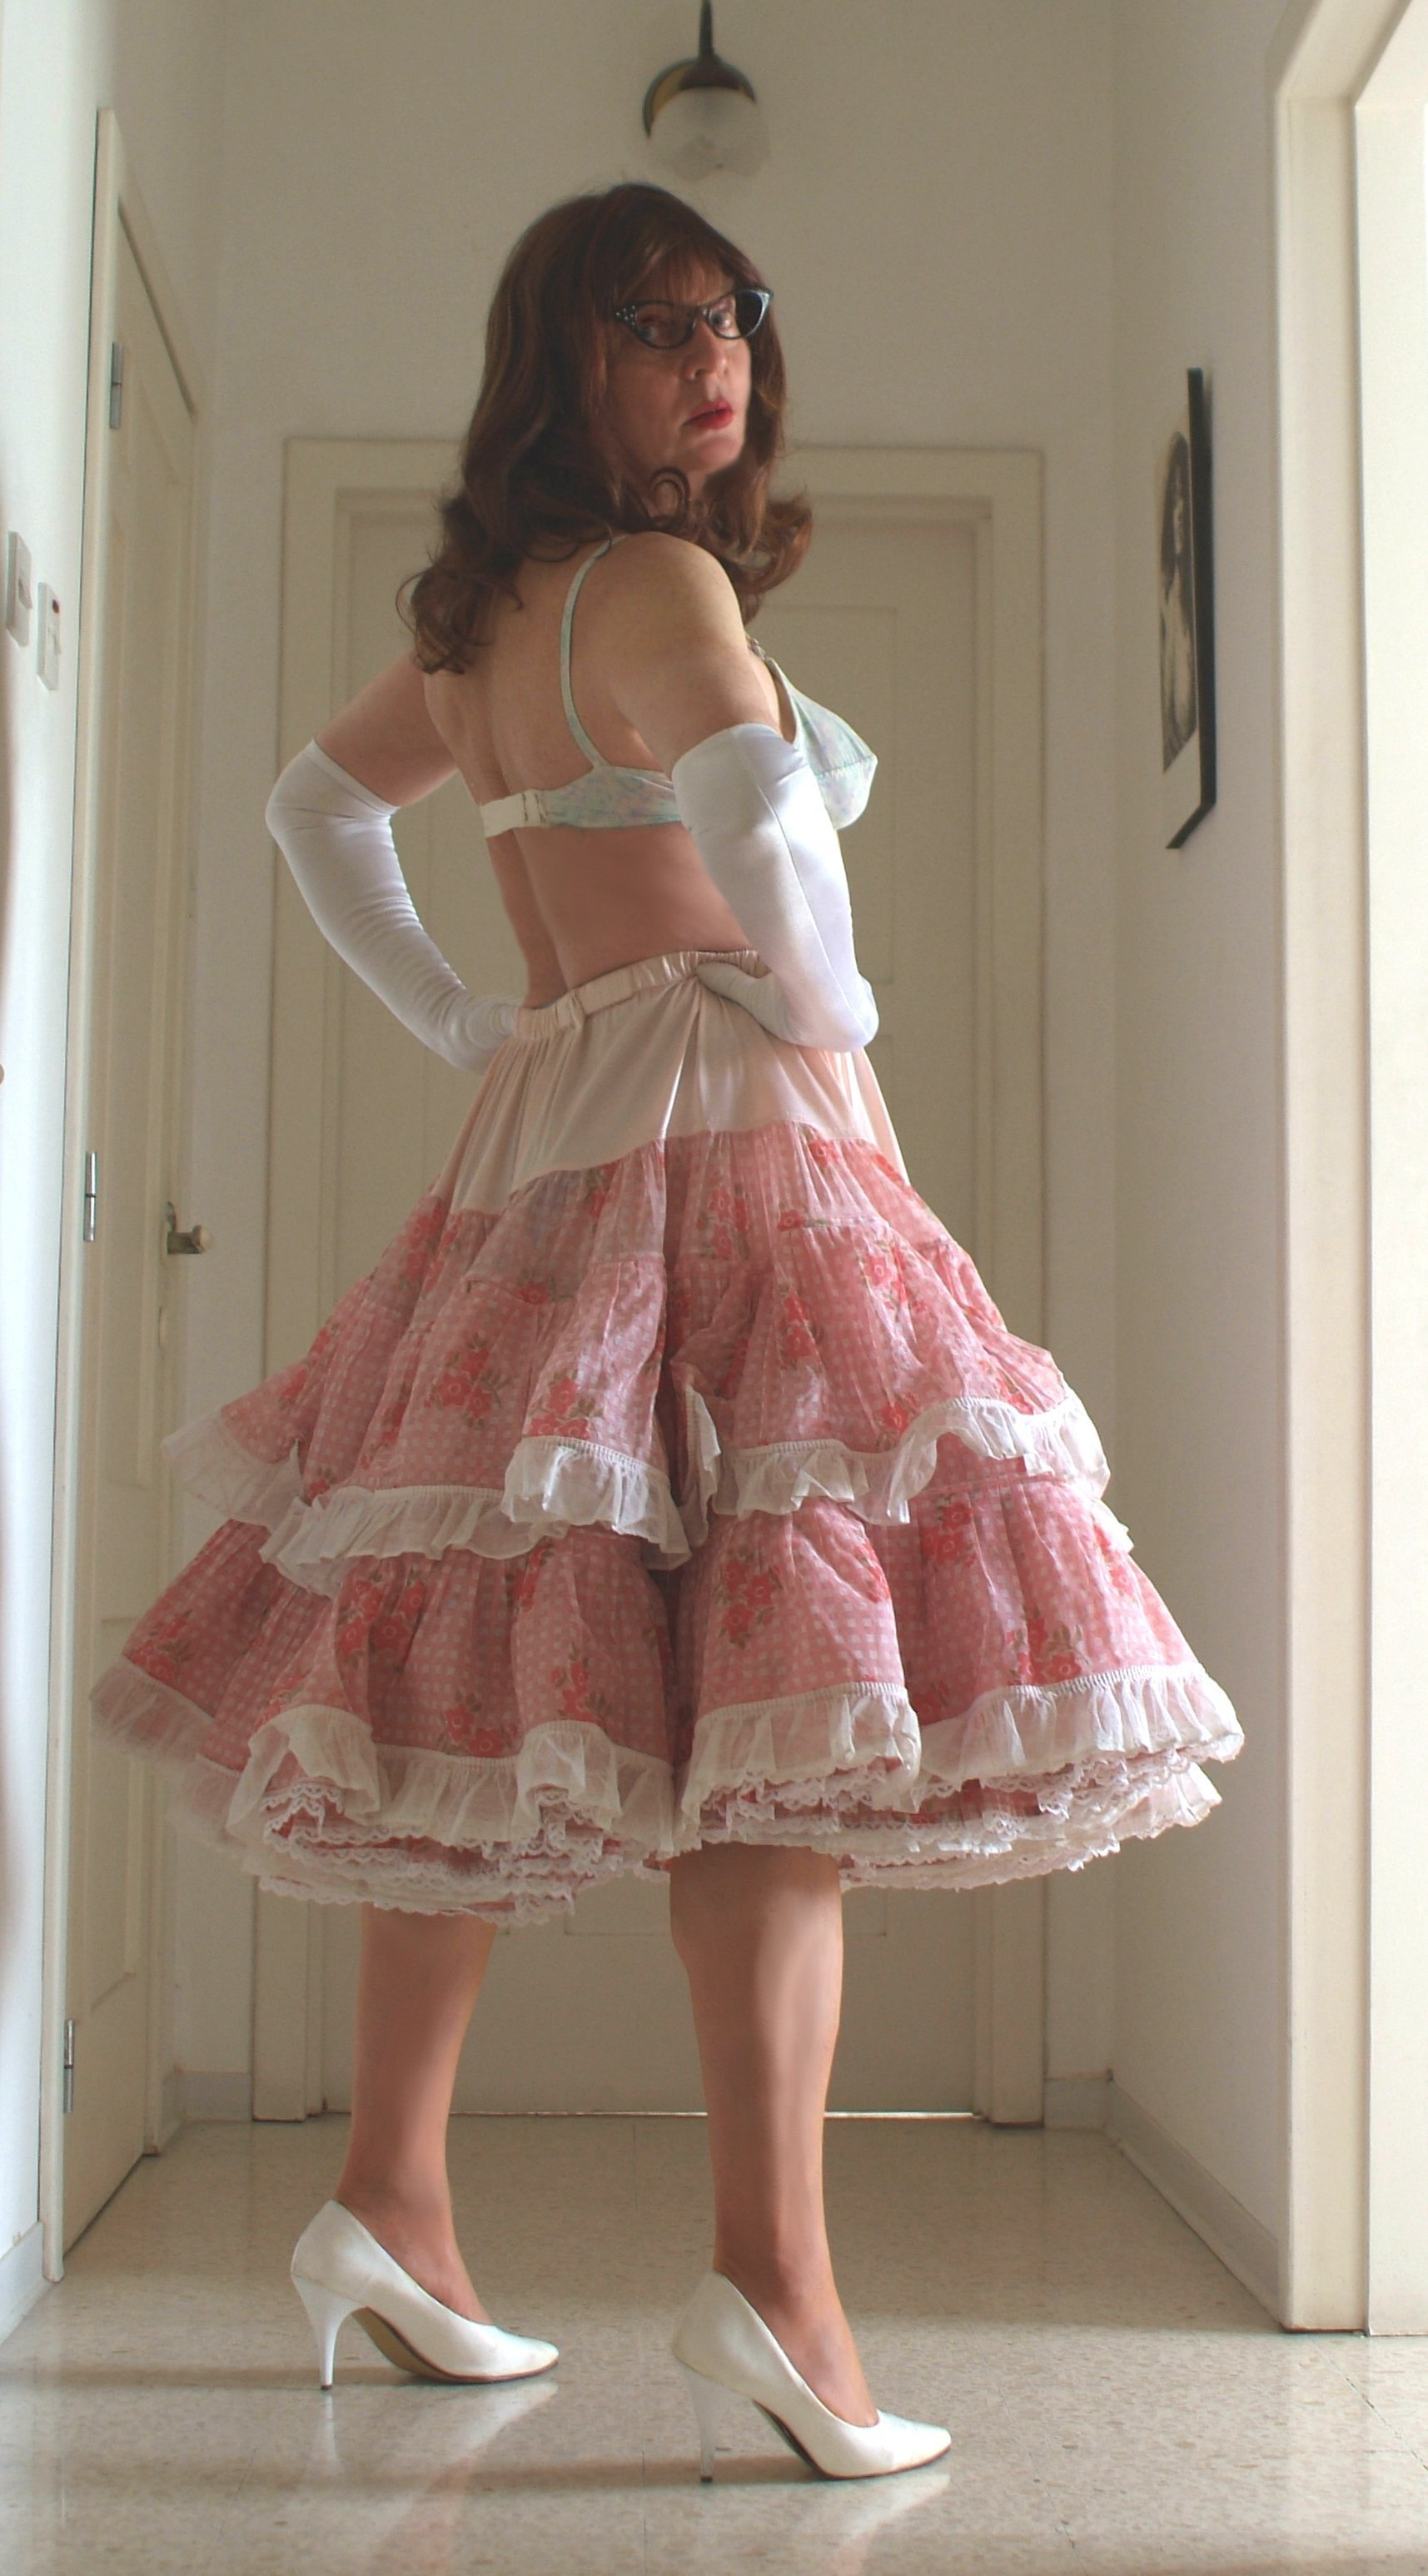 Free Pictures, Images and Photos Pinterest Boys In Petticoats